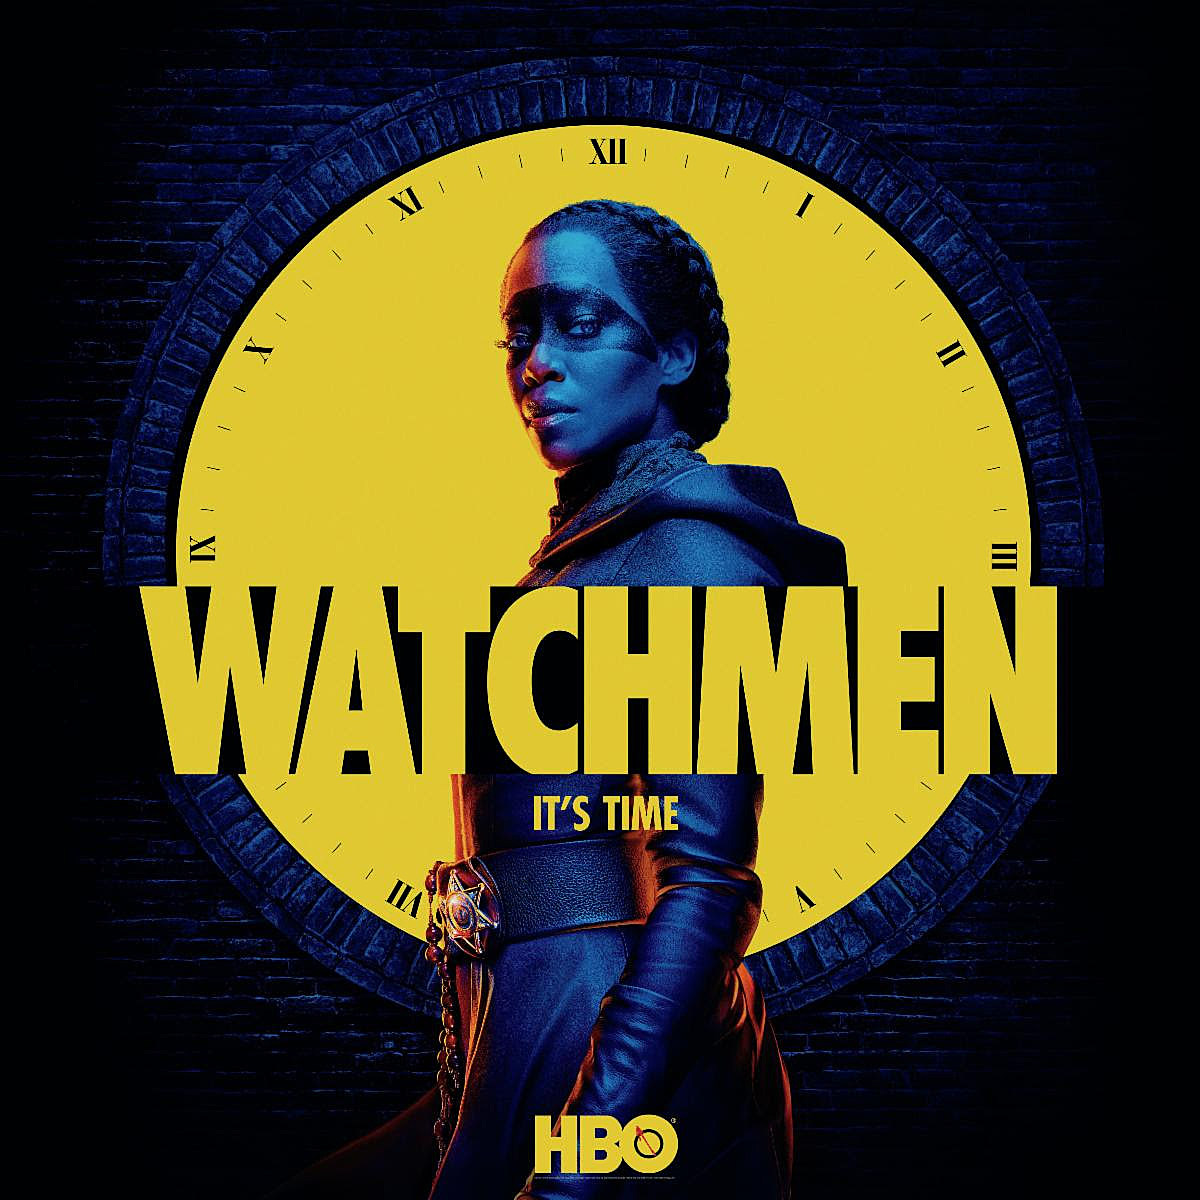 Trent Reznor Atticus Ross share their 'Watchmen' closing credits theme